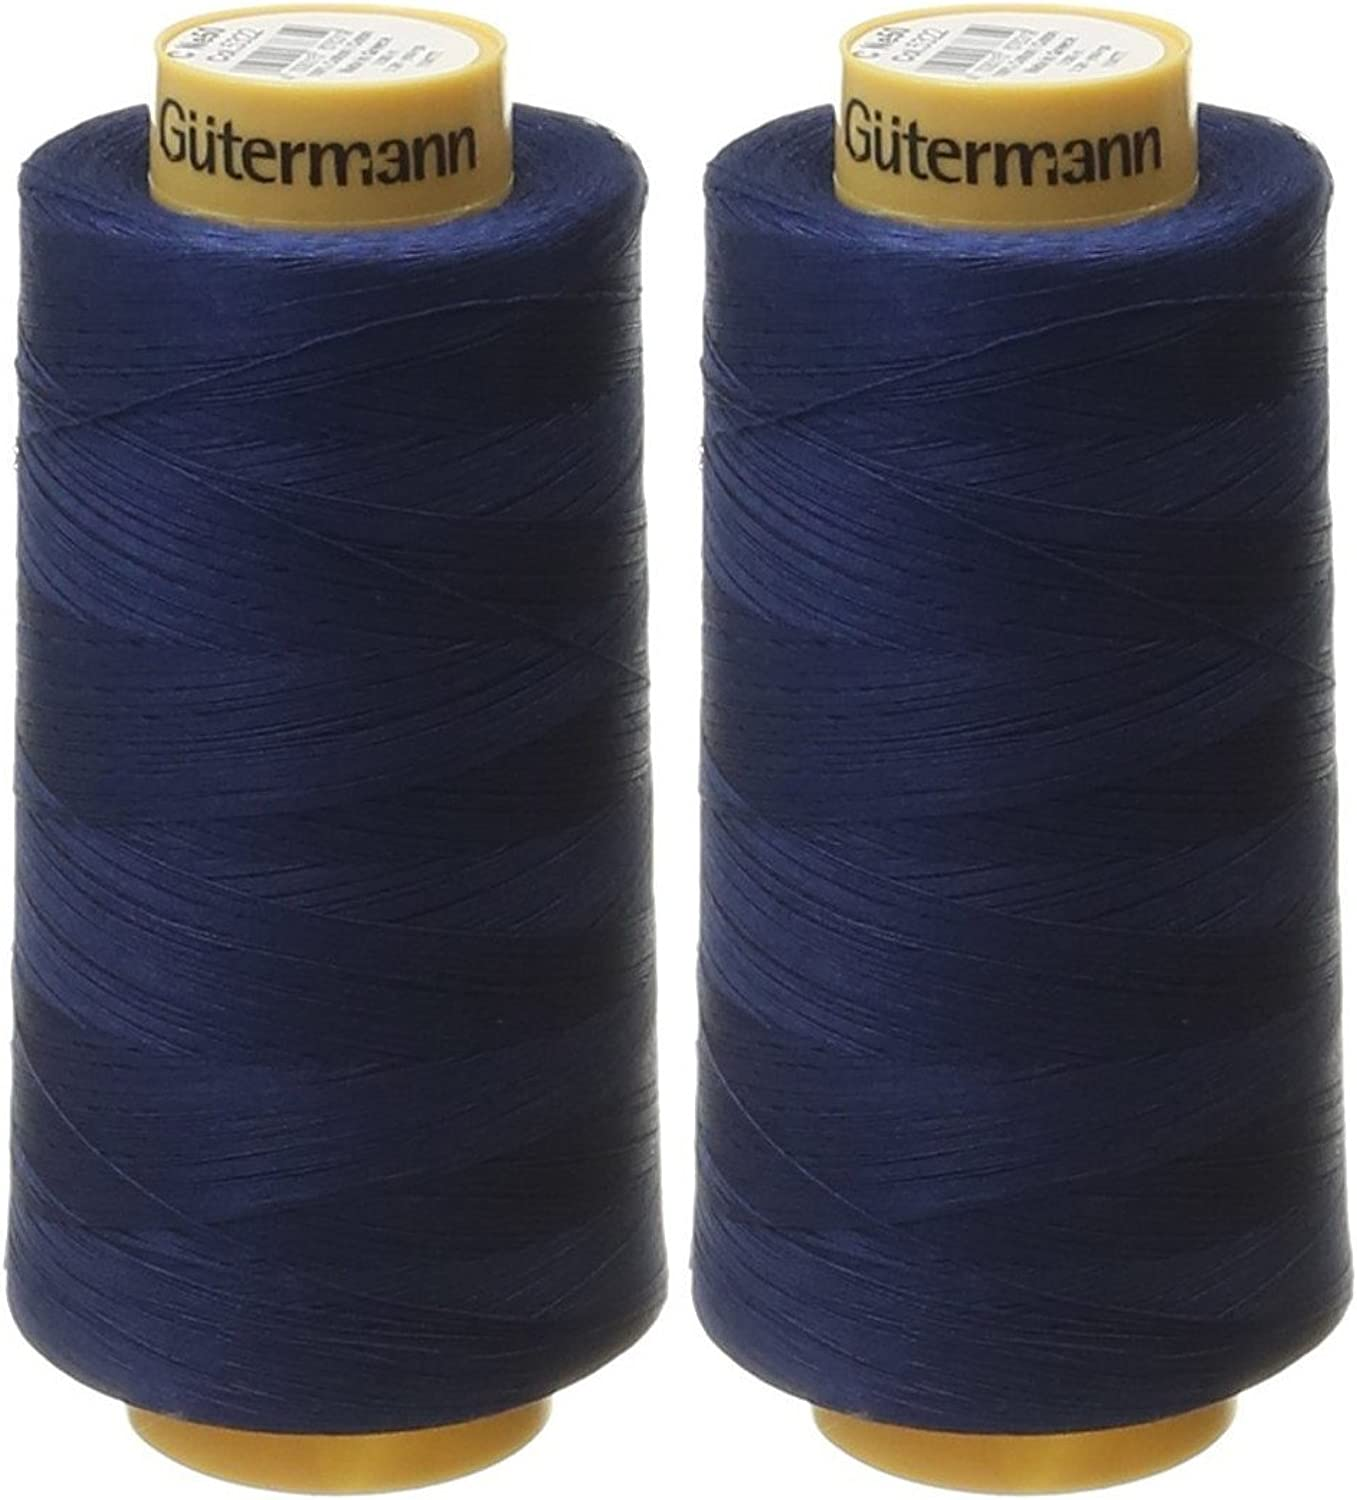 (2Pack, Navy)  2Pack  Gutermann Natural Cotton Thread Solids, 3281Yard each, Navy